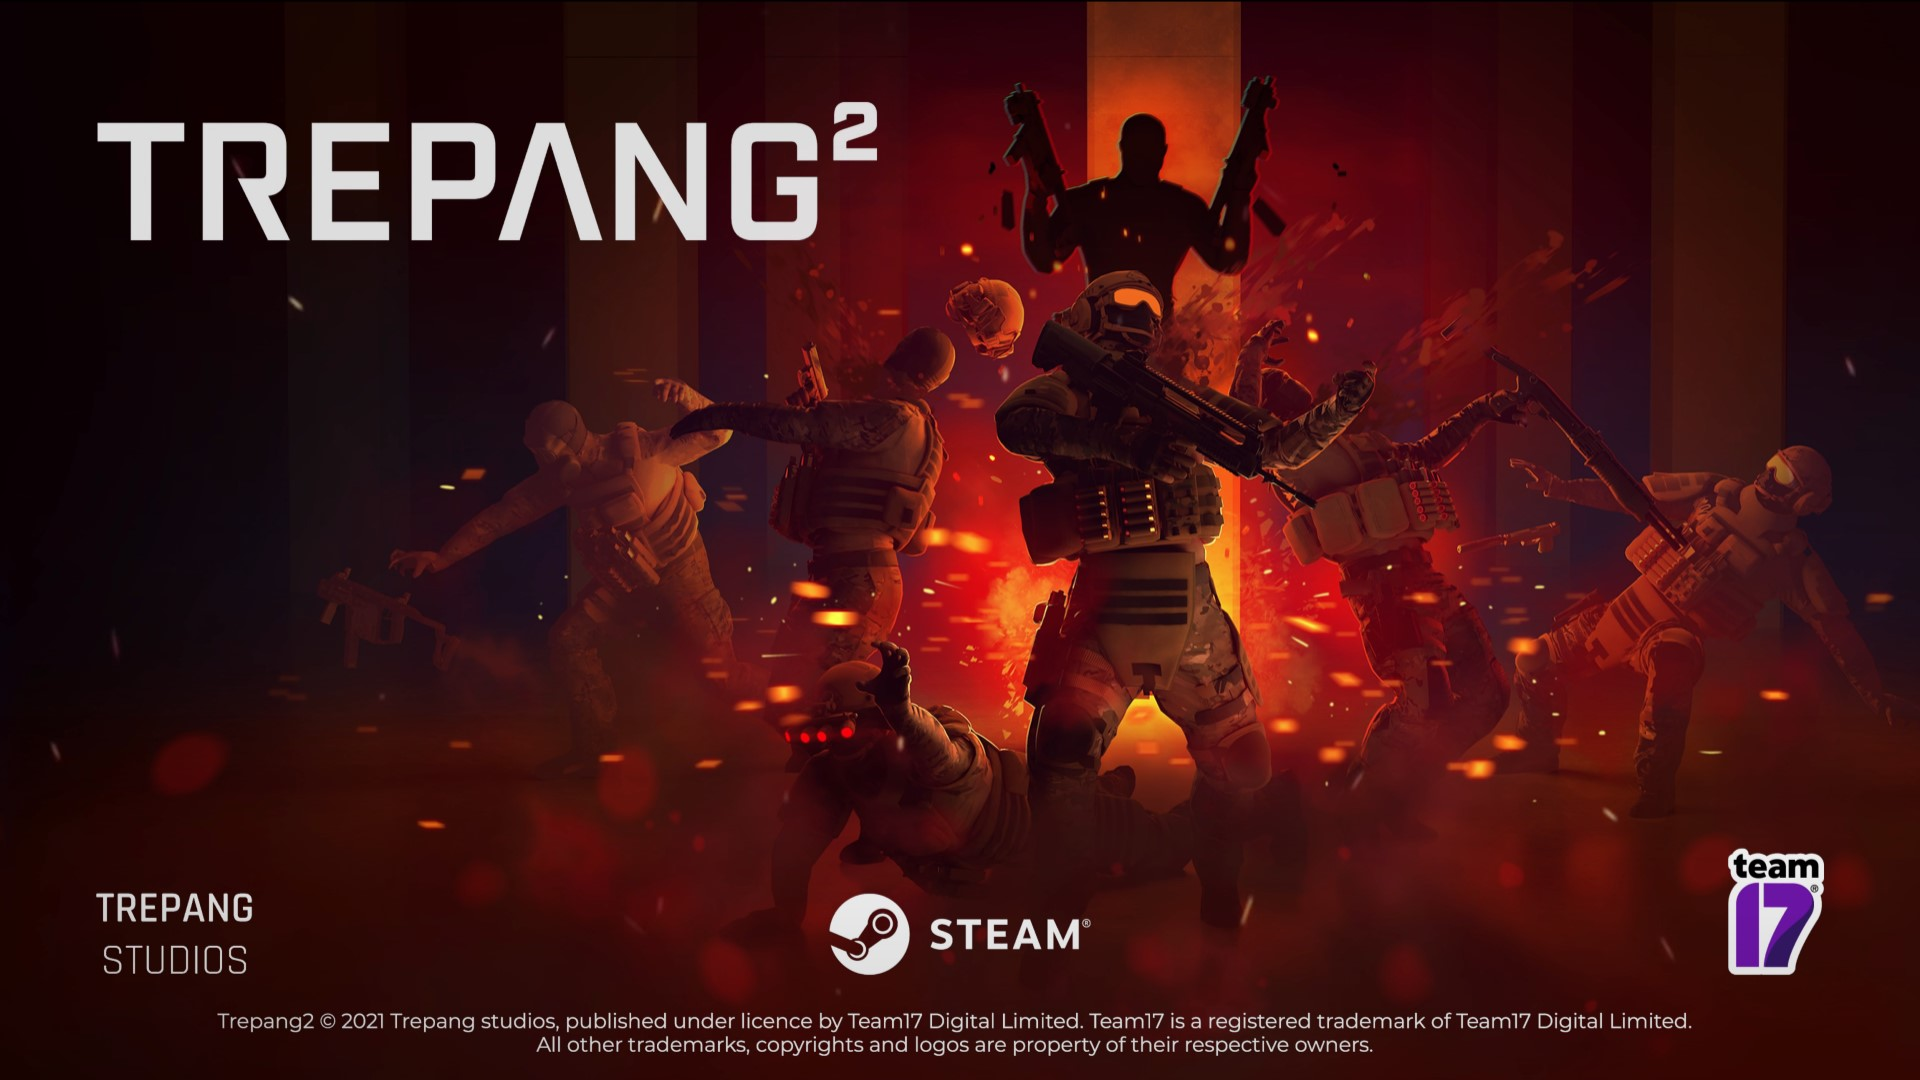 Trepang2 Trailer and Release Date Revealed